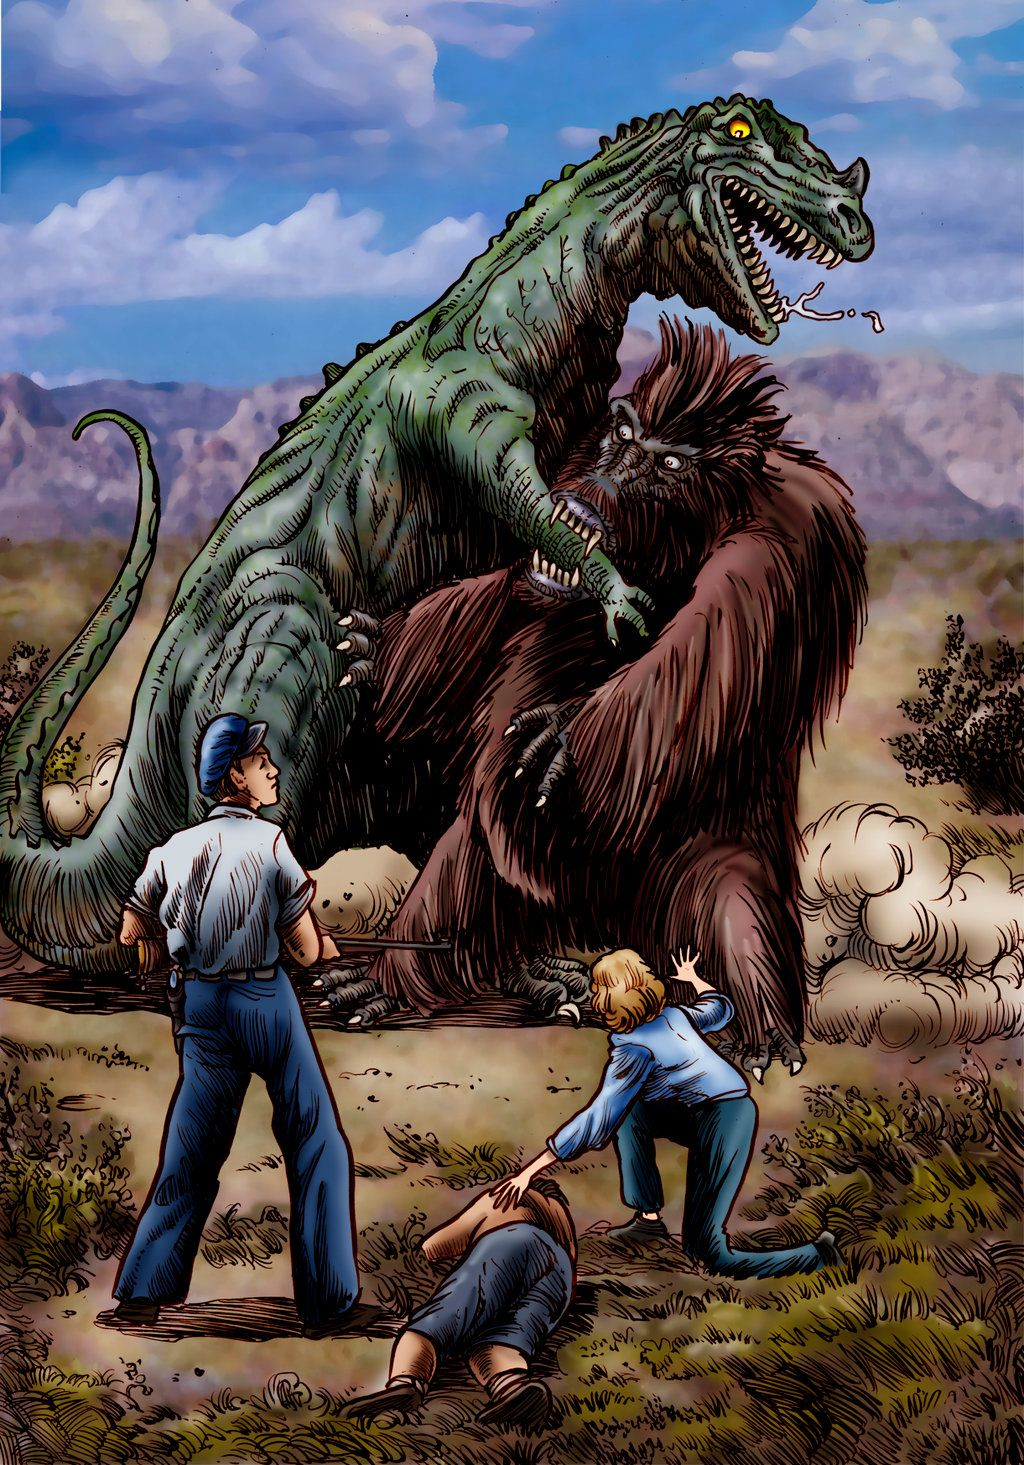 Artists depiction of the titanic dinosaur vs giant sloth battle in ...